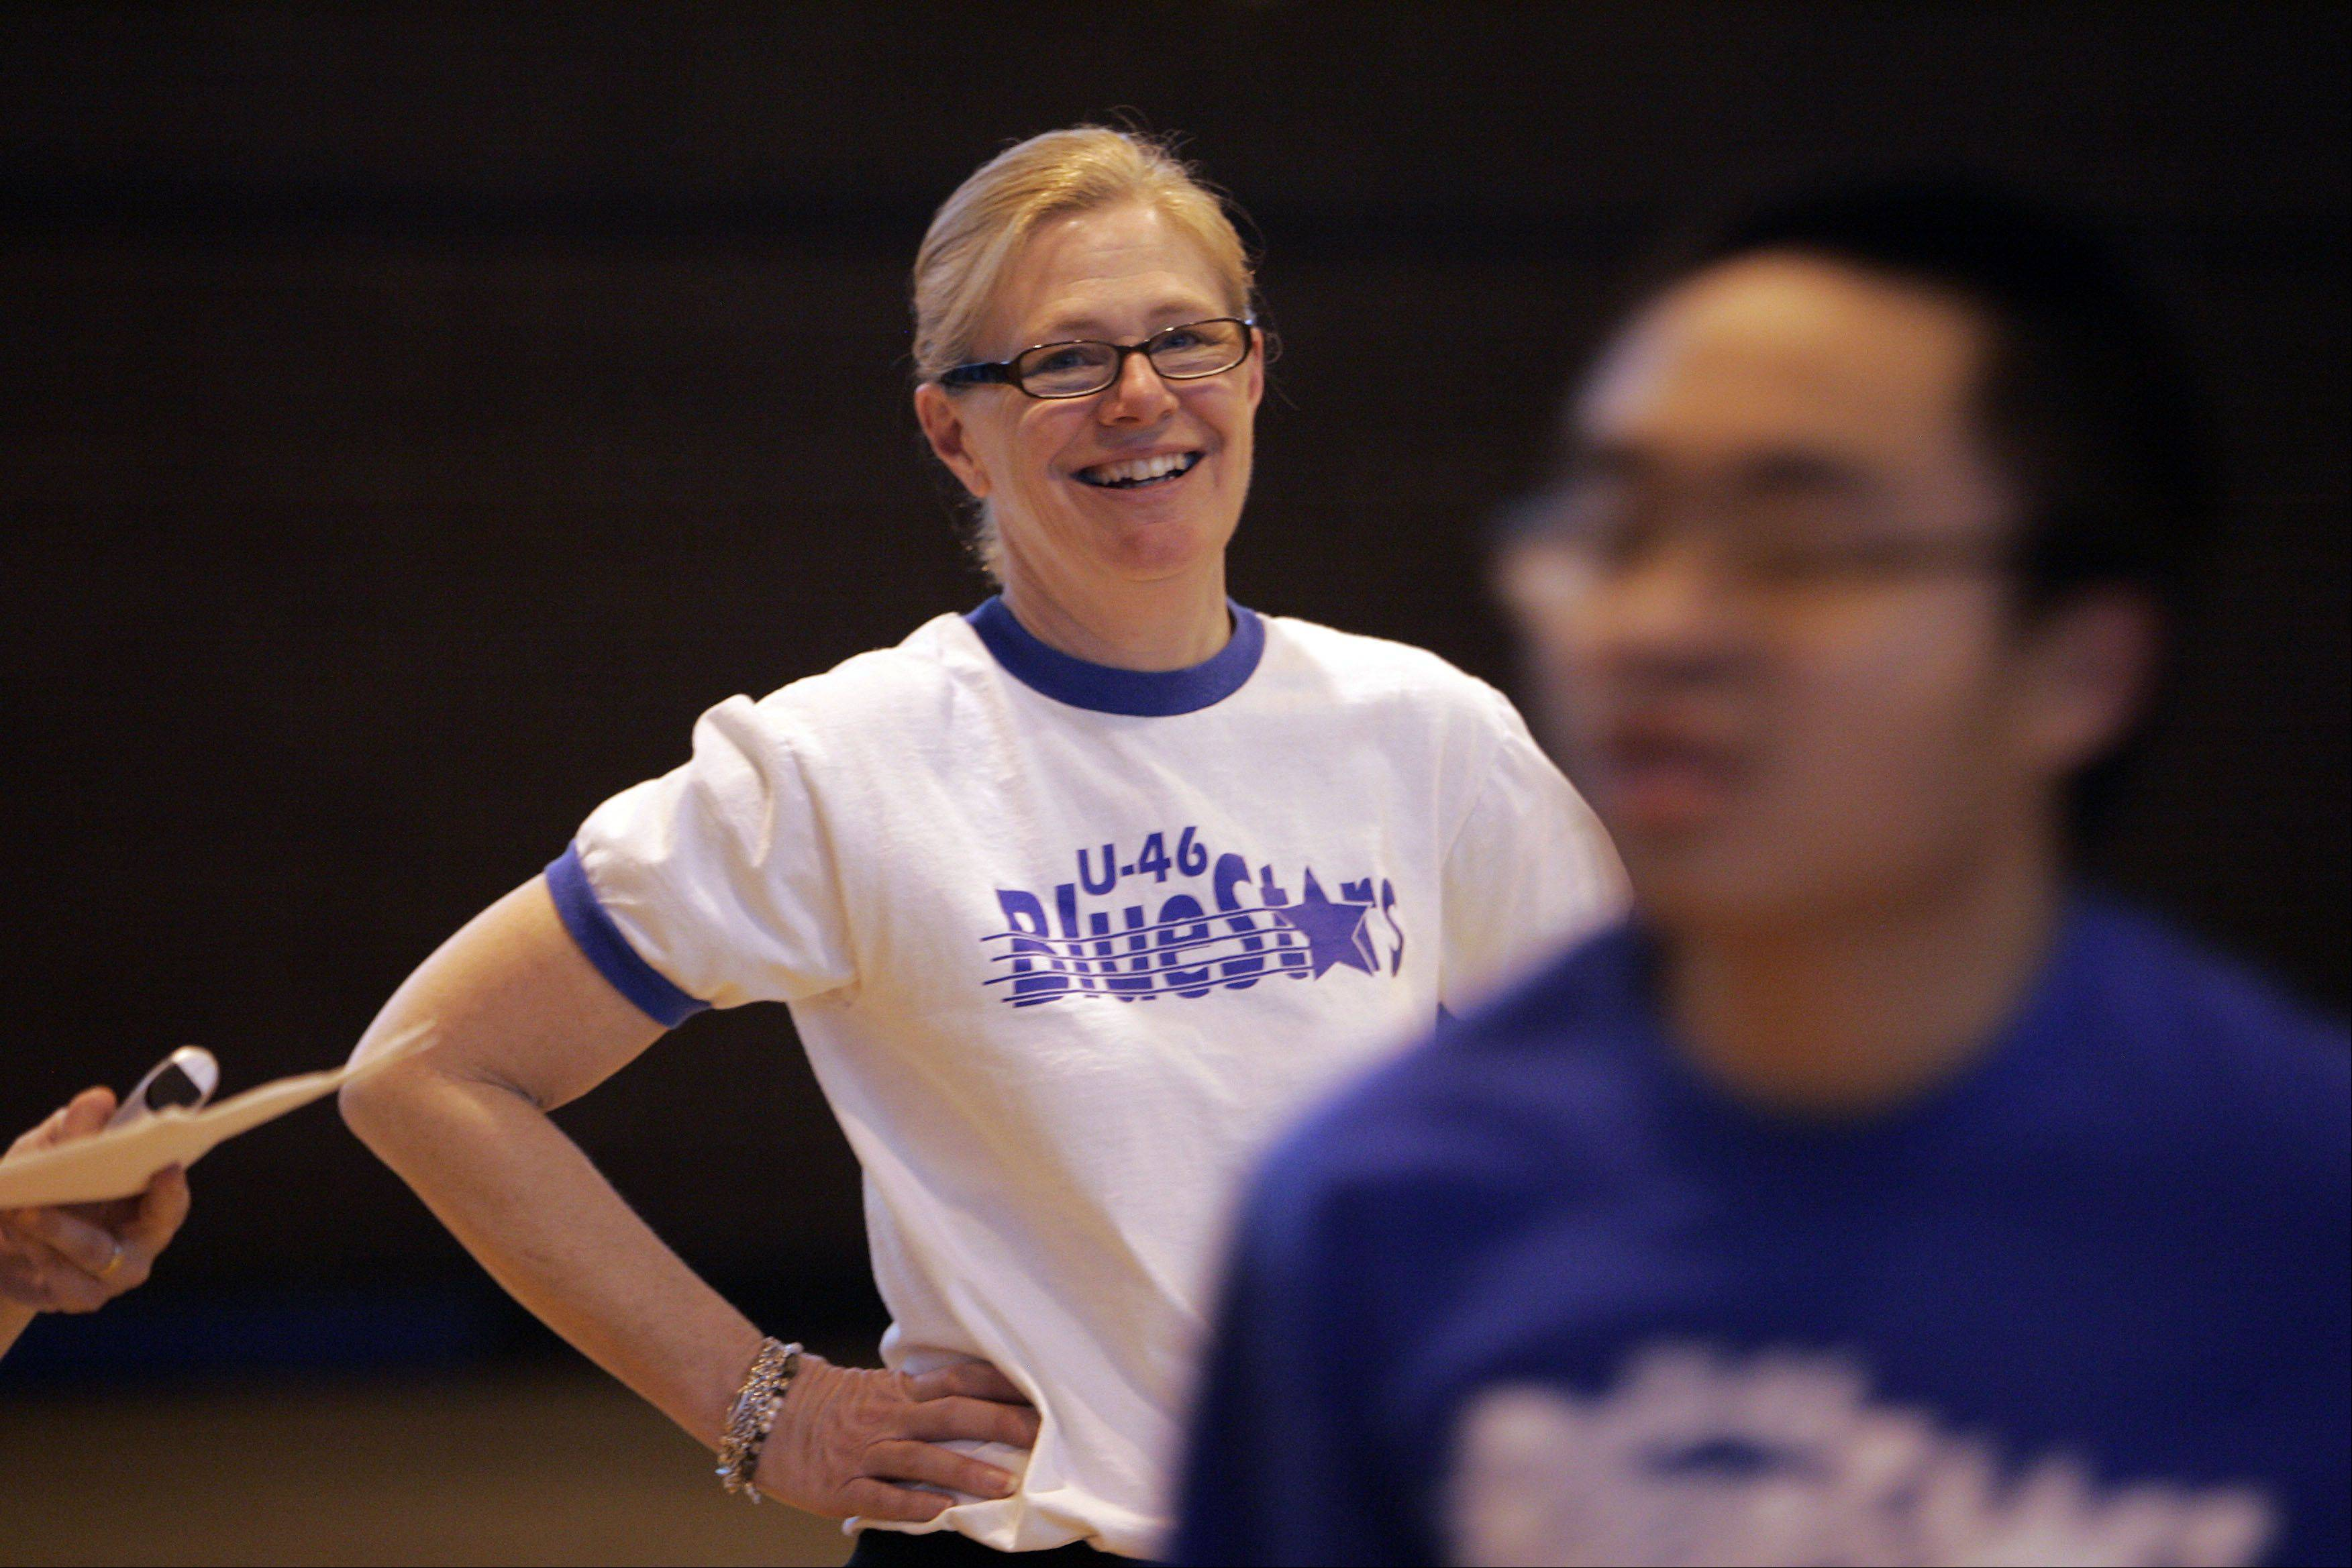 As coordinator of the Special Olympics program for all of Elgin Area School District U-46, Maureen Lue finds plenty to smile about as her BlueStars track and field team practices for the April 21 regional in Naperville.